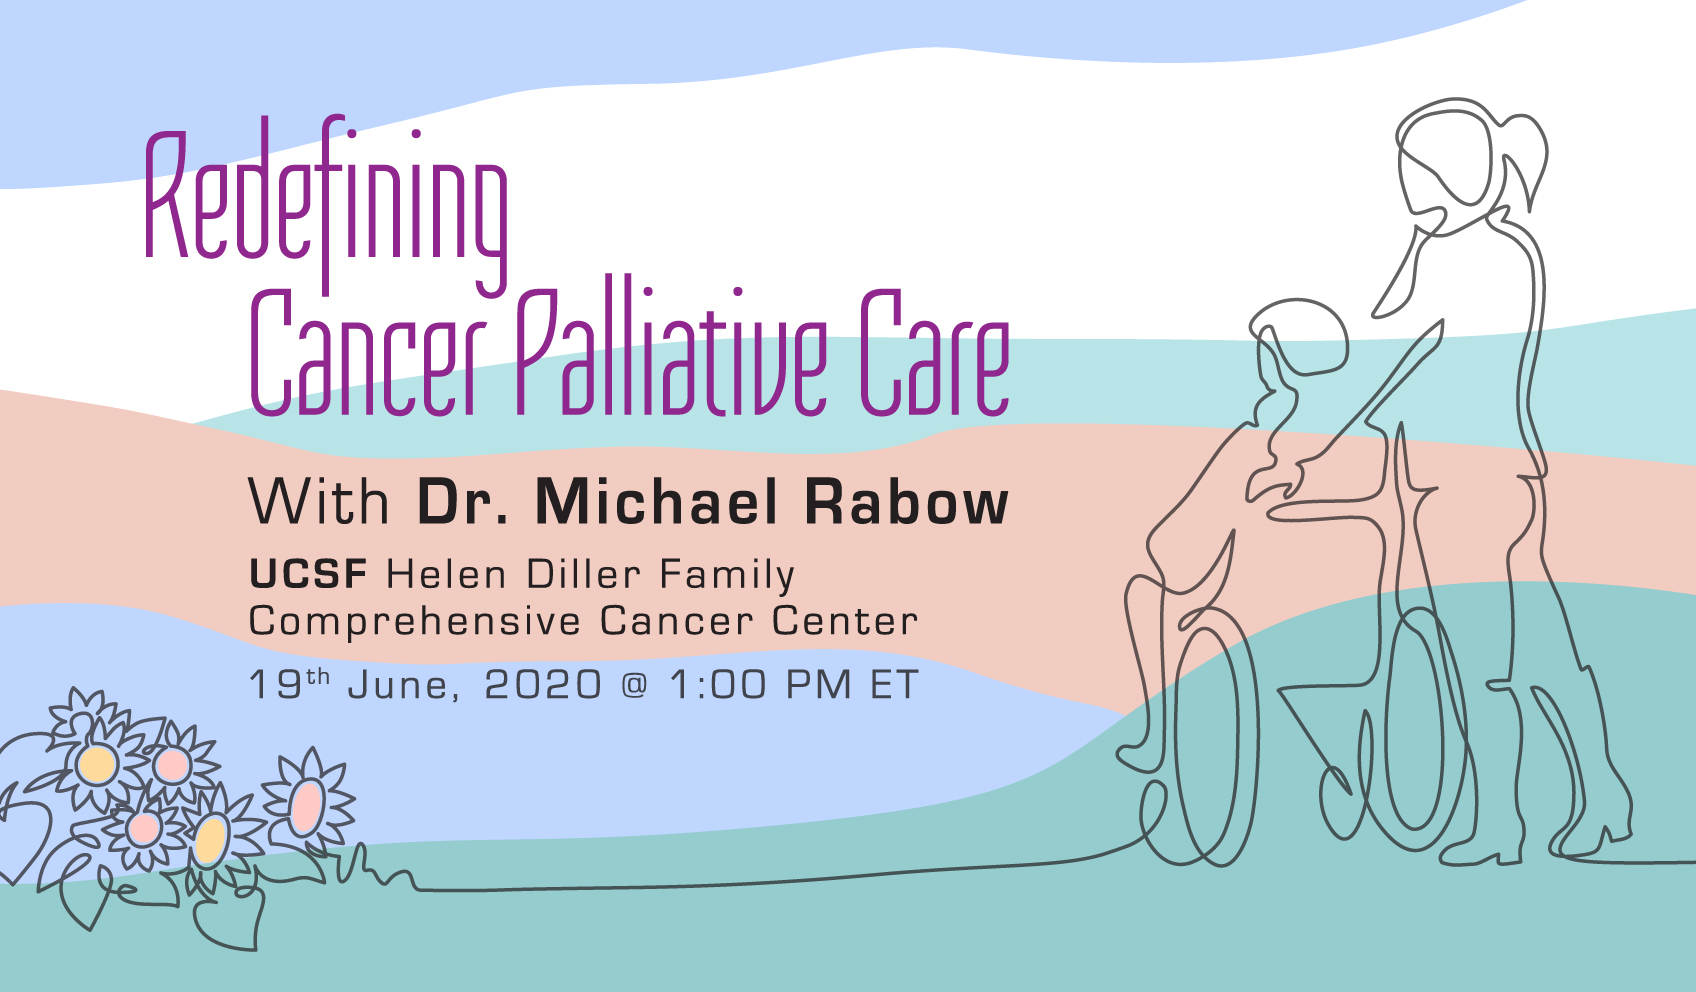 Redefining Cancer Palliative Care